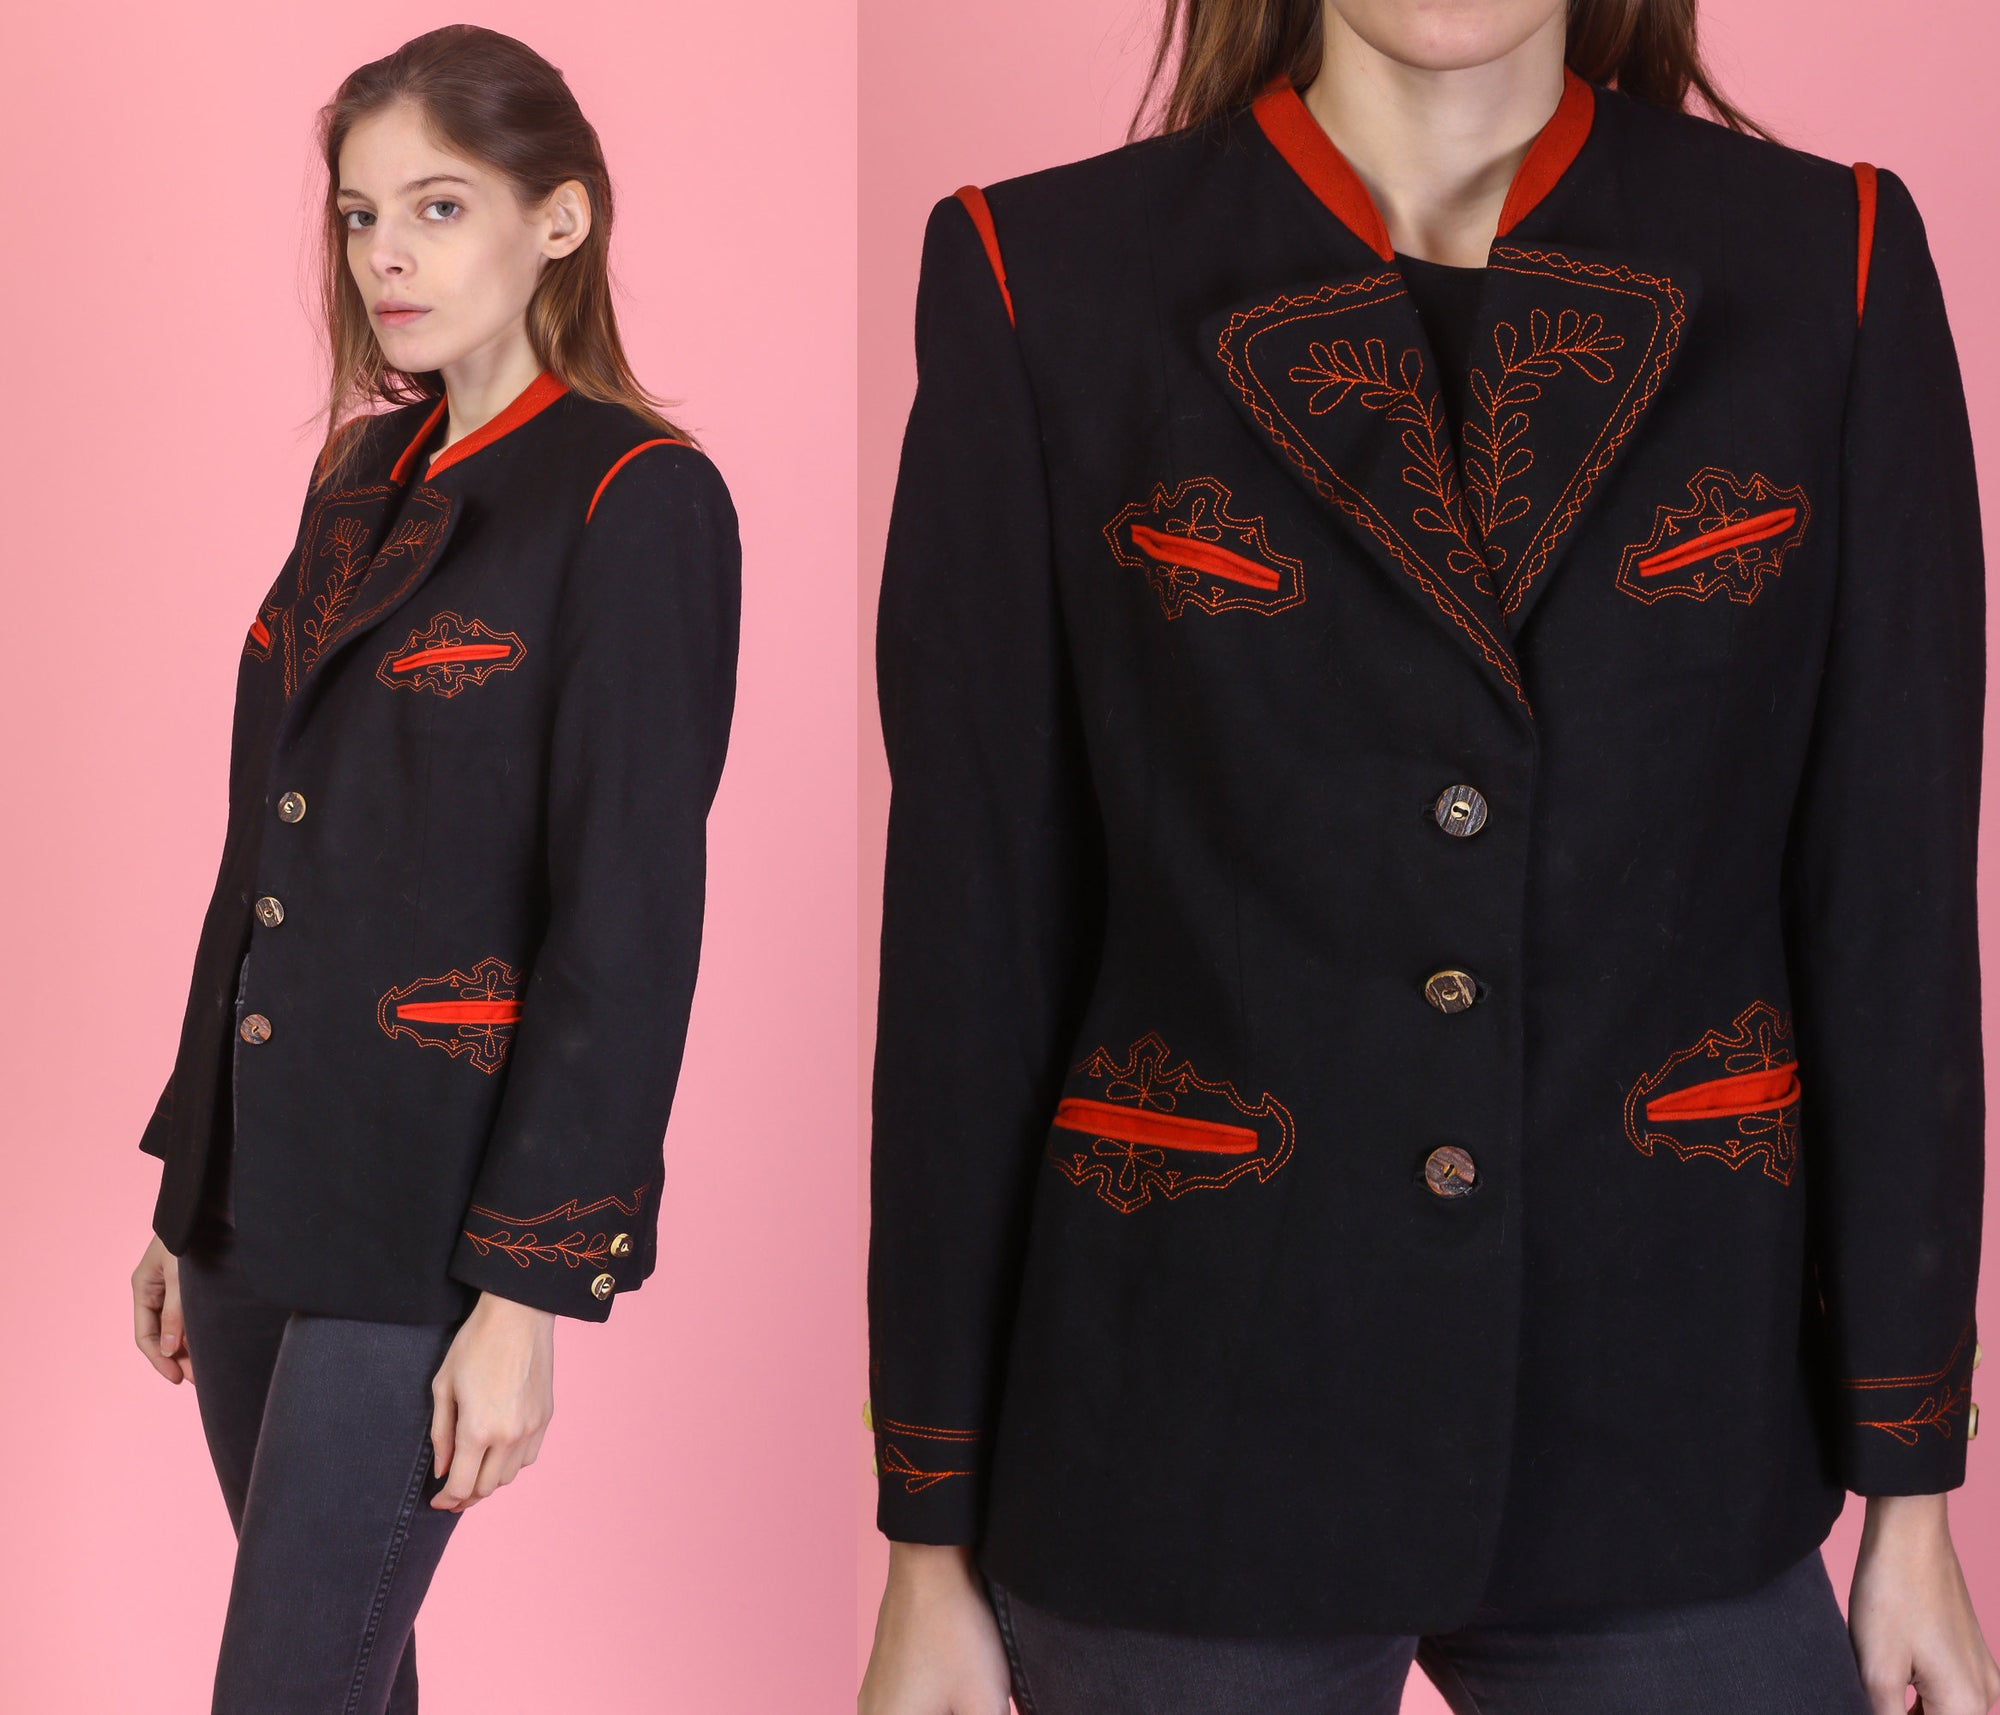 Vintage 40s 50s Embroidered Western Blazer Jacket - Small